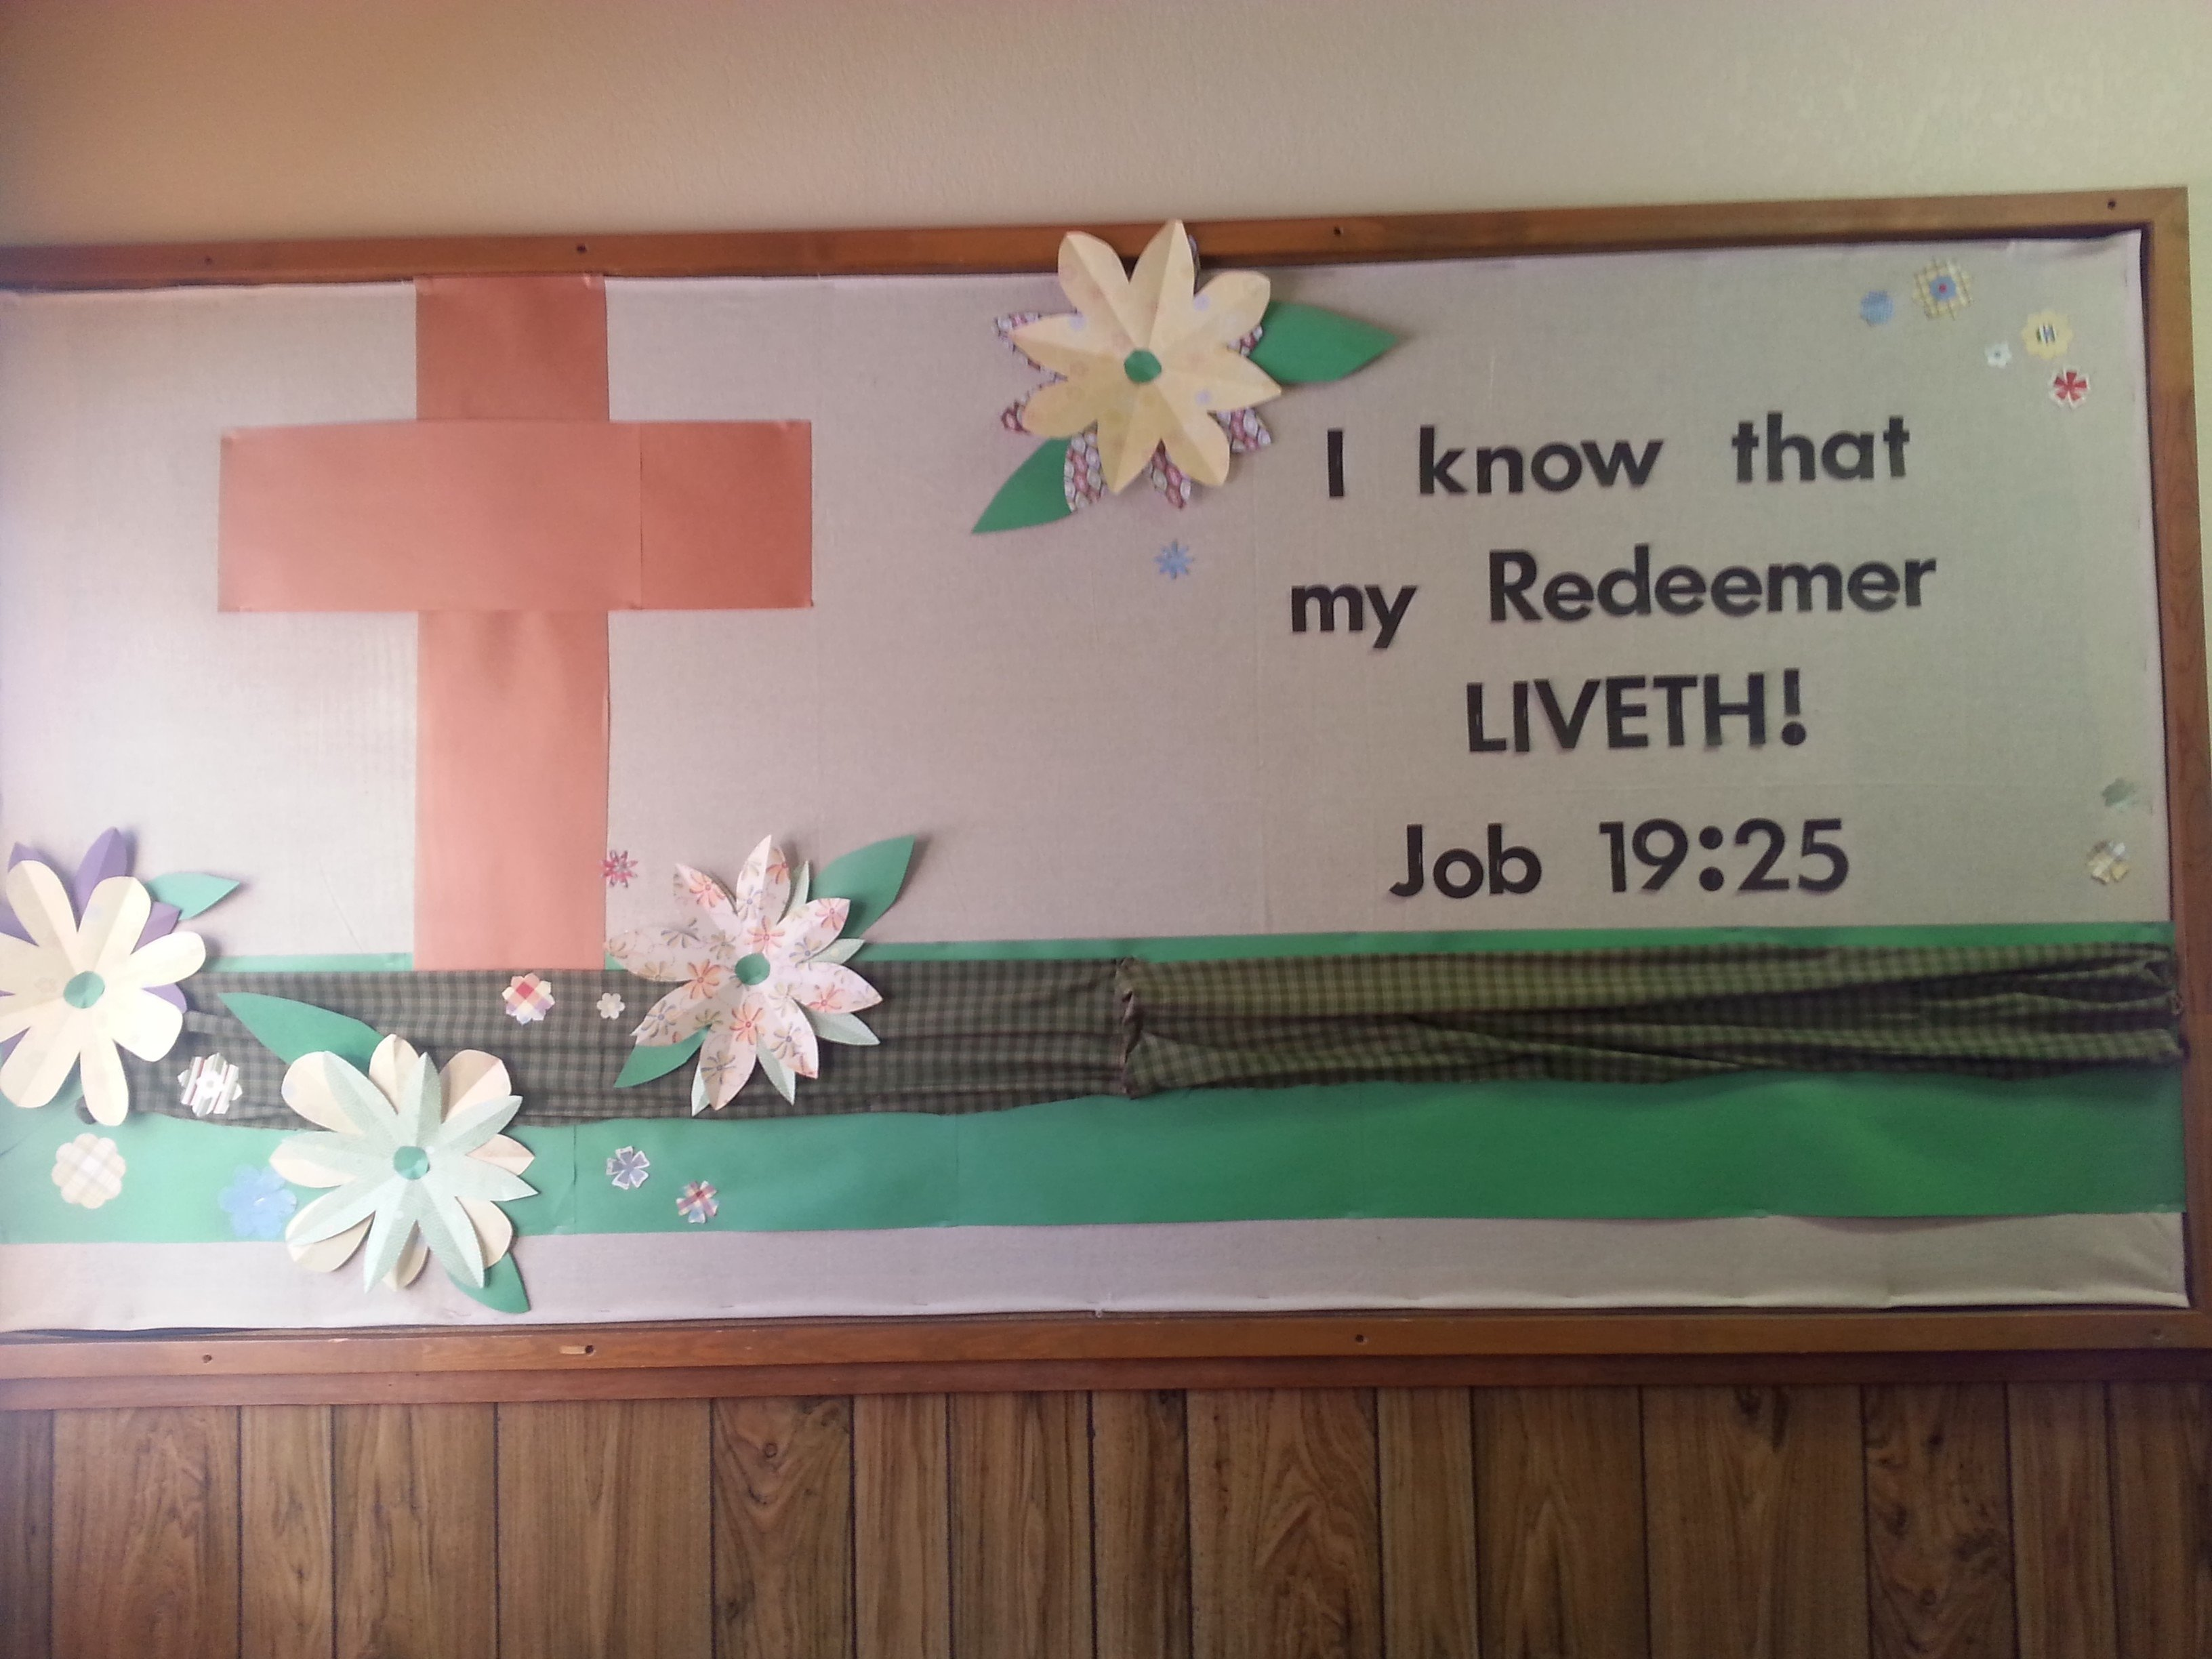 10 Most Recommended Easter Bulletin Board Ideas For Church i know that my redeemer liveth bulletin board 2020